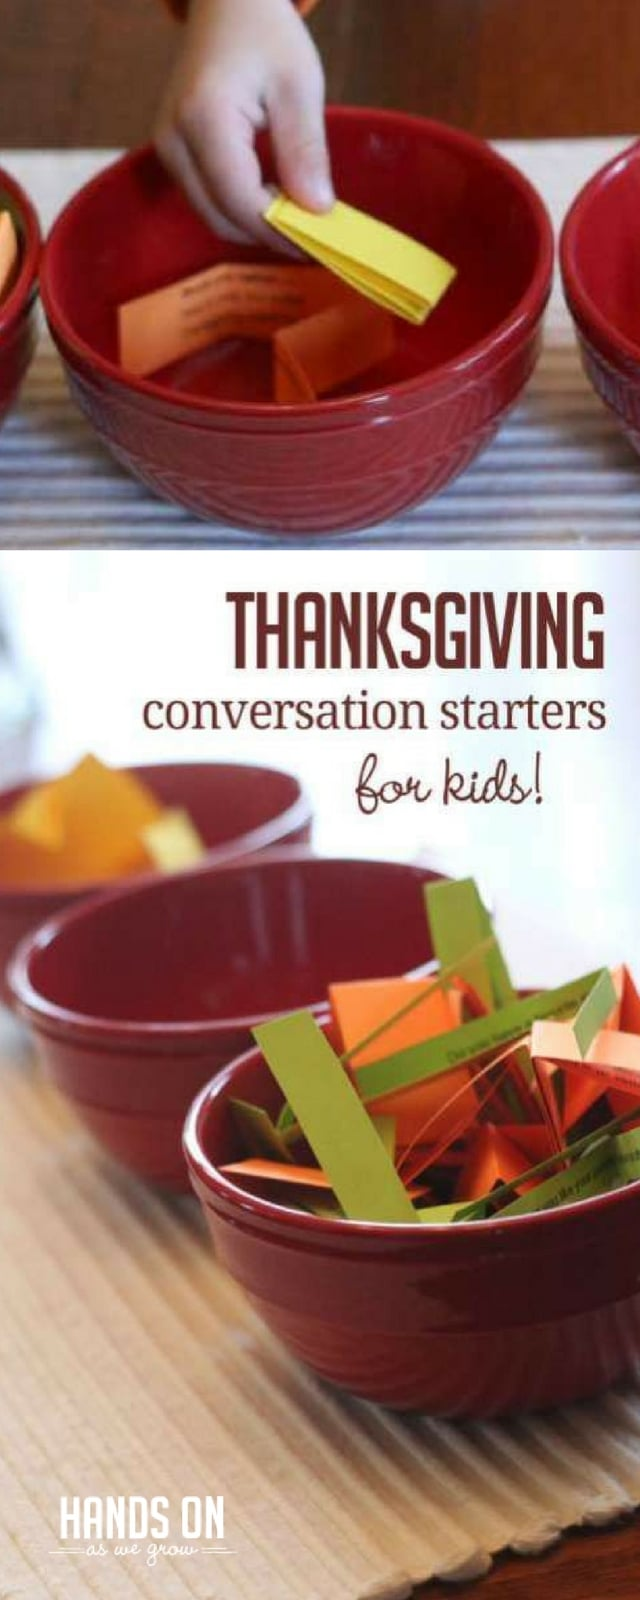 10 simple Thanksgiving conversation starters for young kids to express their gratitude.